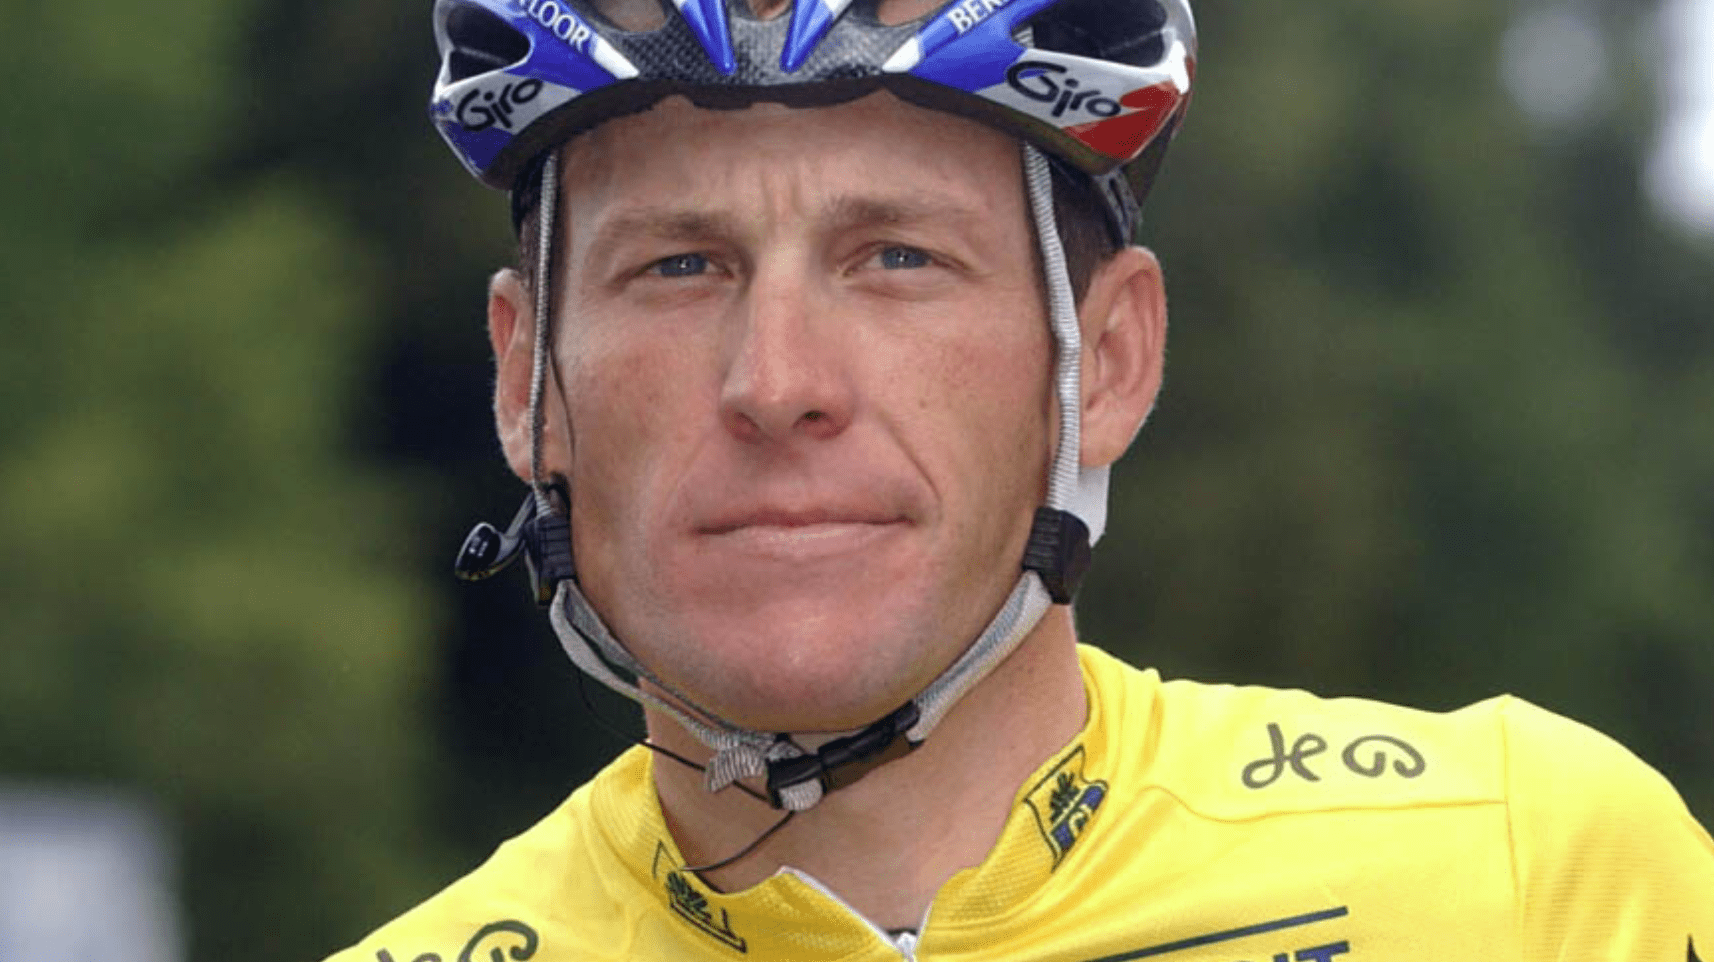 Lance Armstrong's bike shop says it will stop selling and servicing bicycles to Texas police department